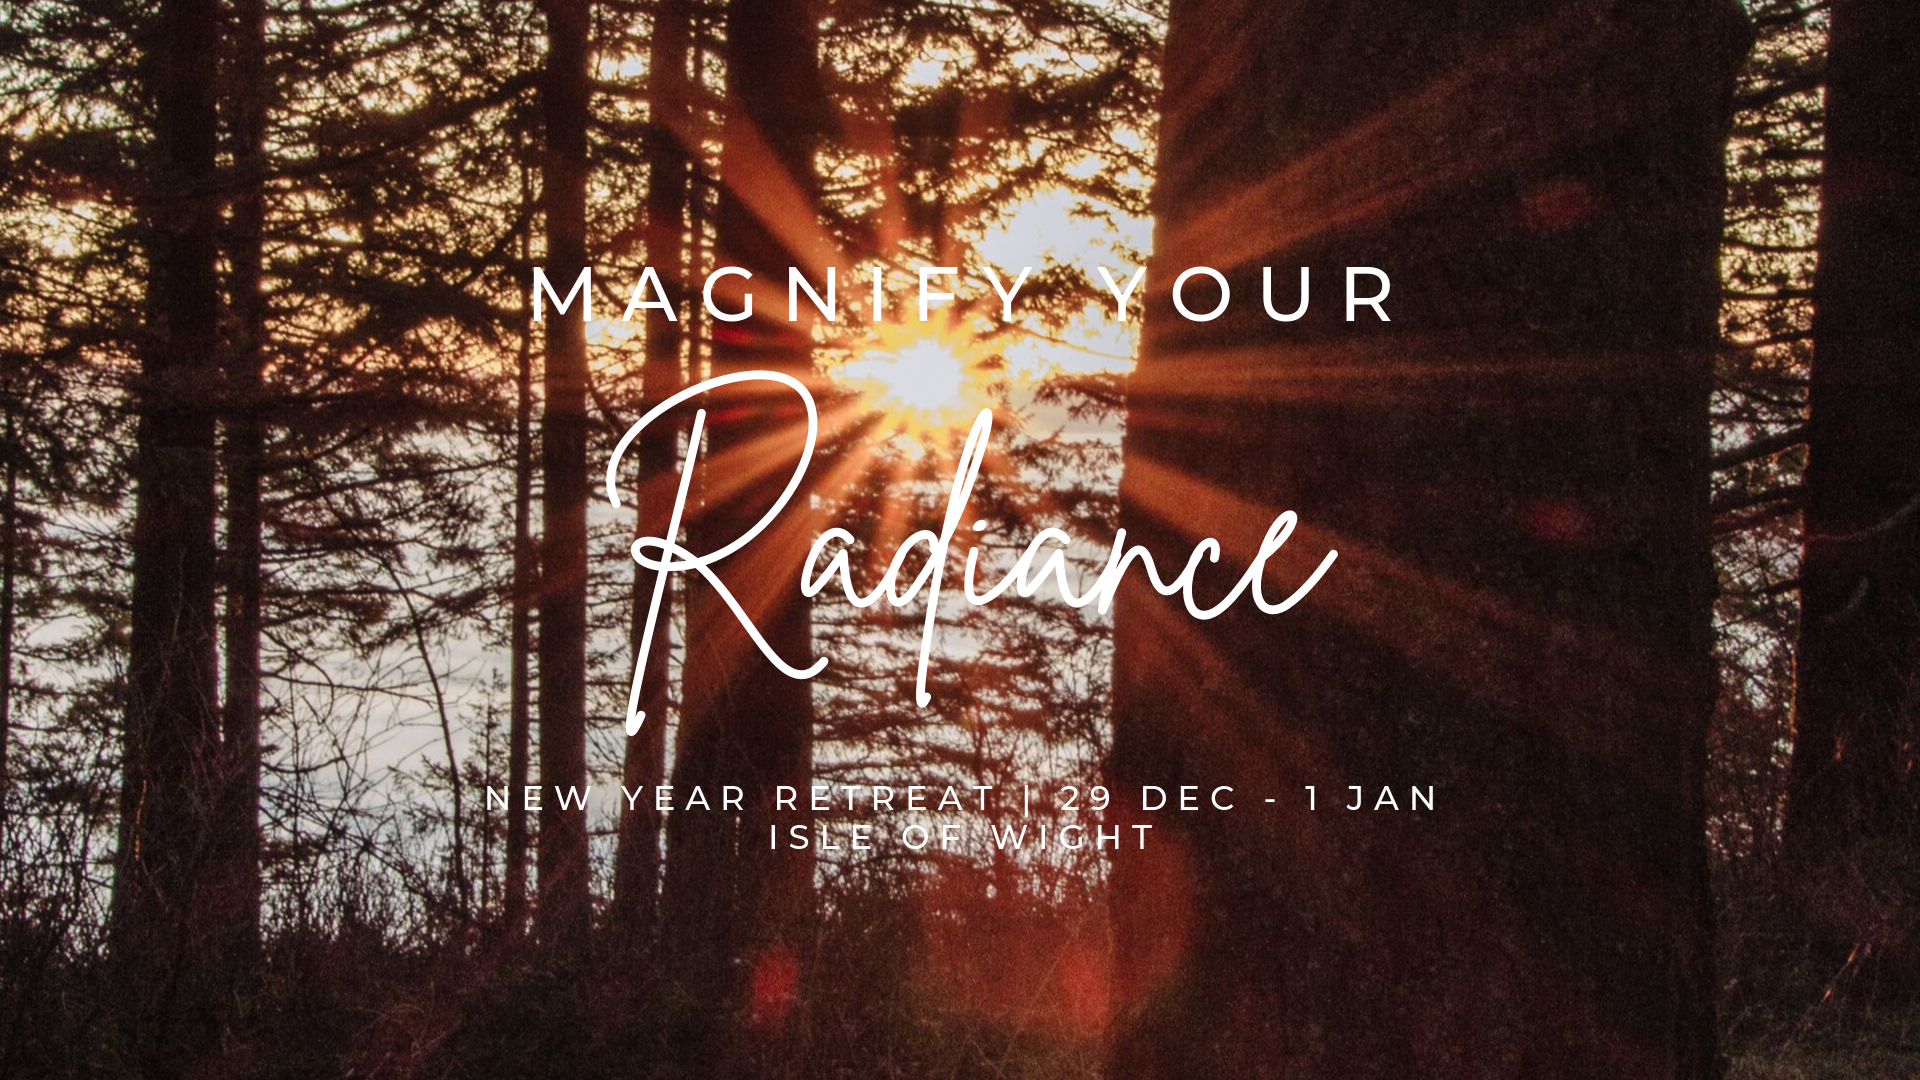 Magnify Your Radiance New Year Retreat | Isle of Wight